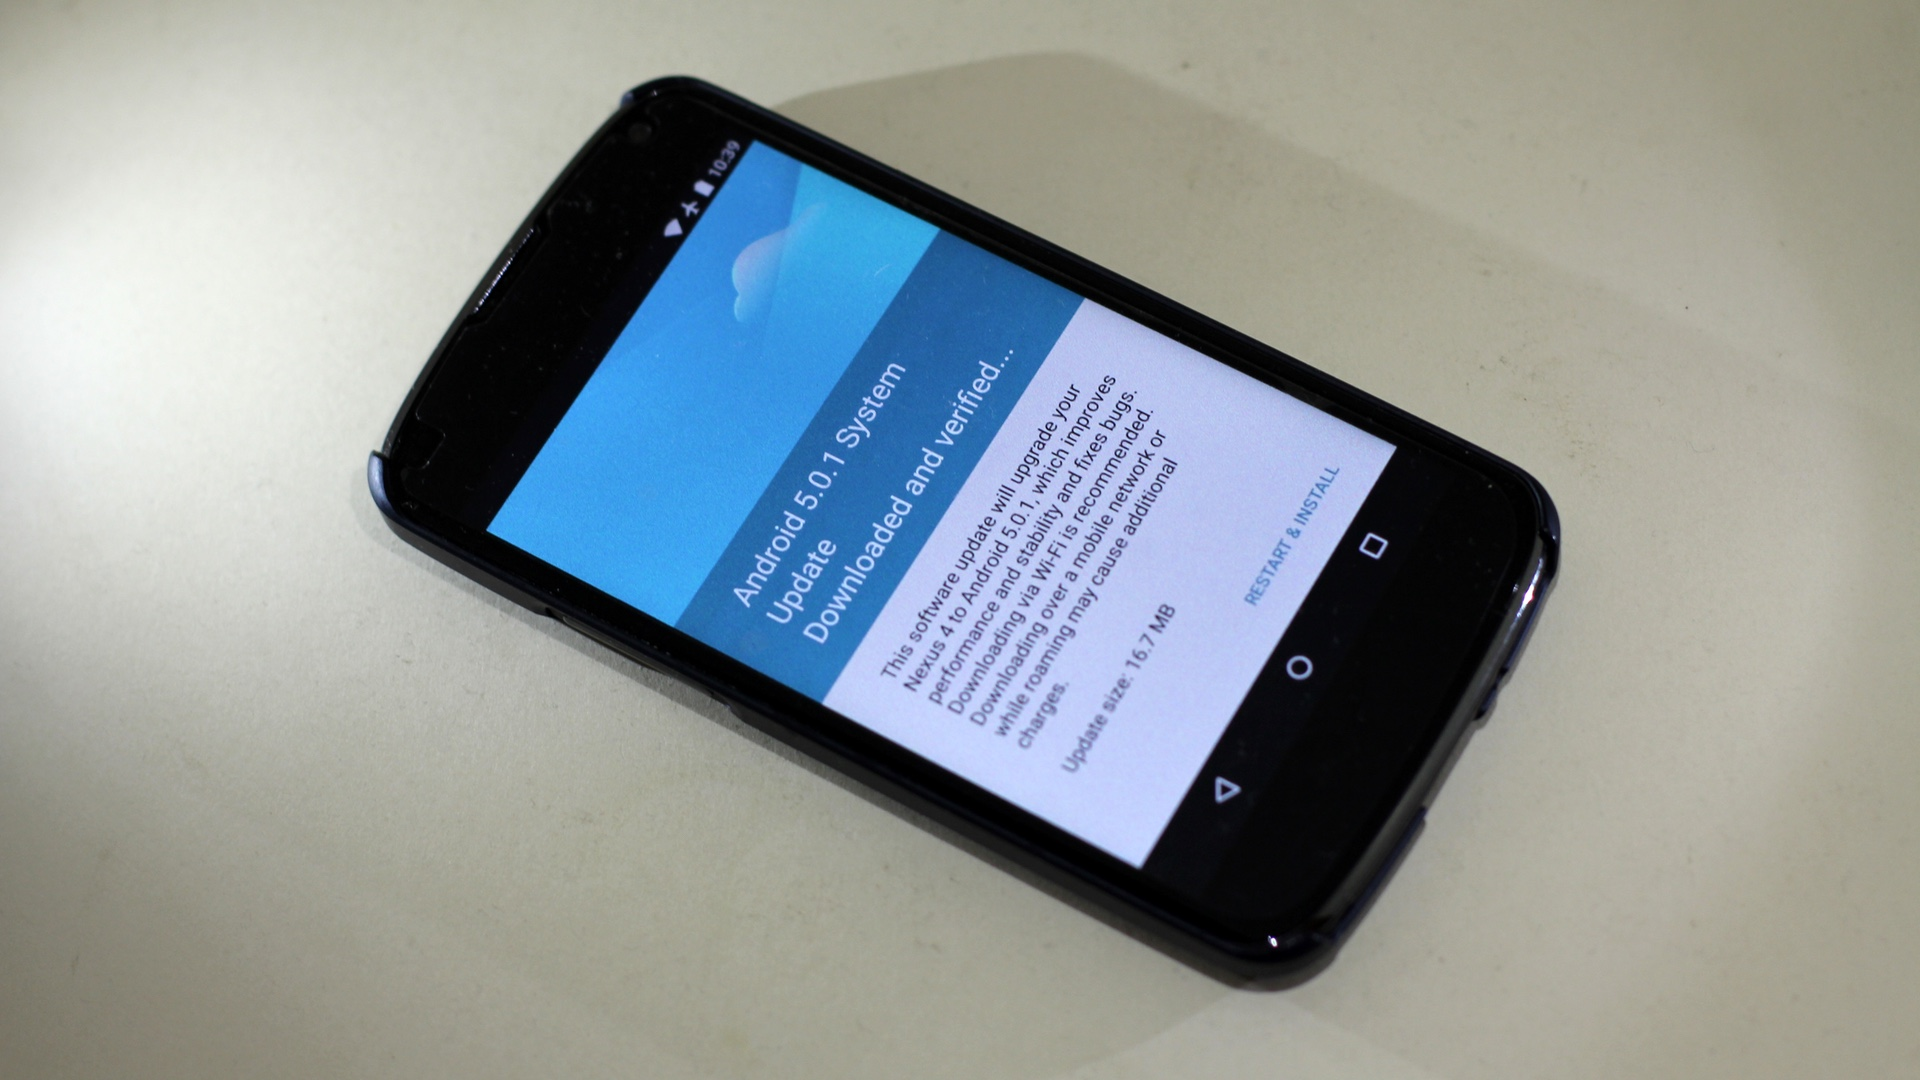 Android 5.0.1 for Nexus 4